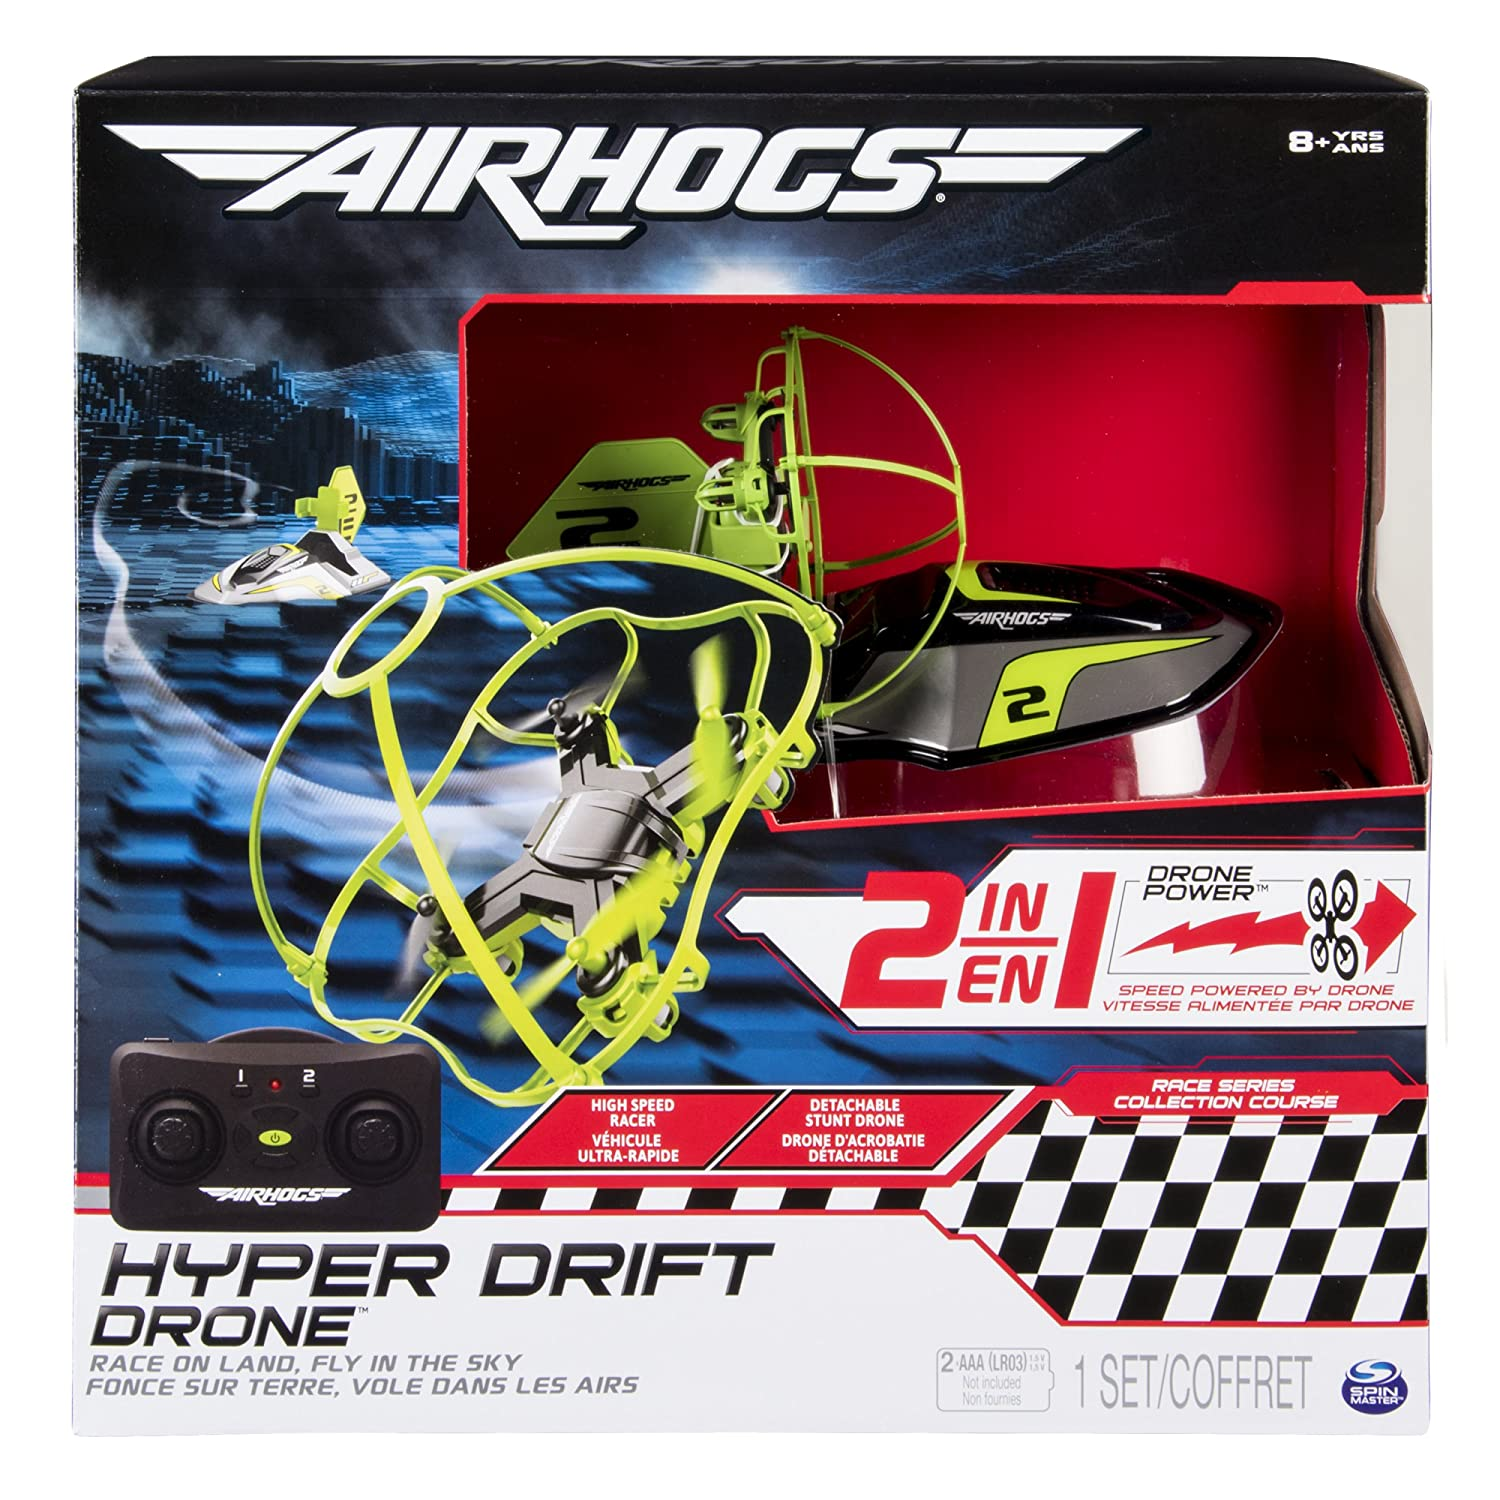 Amazon.com: Air Hogs 2-in-1 Hyper Drift Drone for High Speed Racing and  Flying - Green: Toys & Games